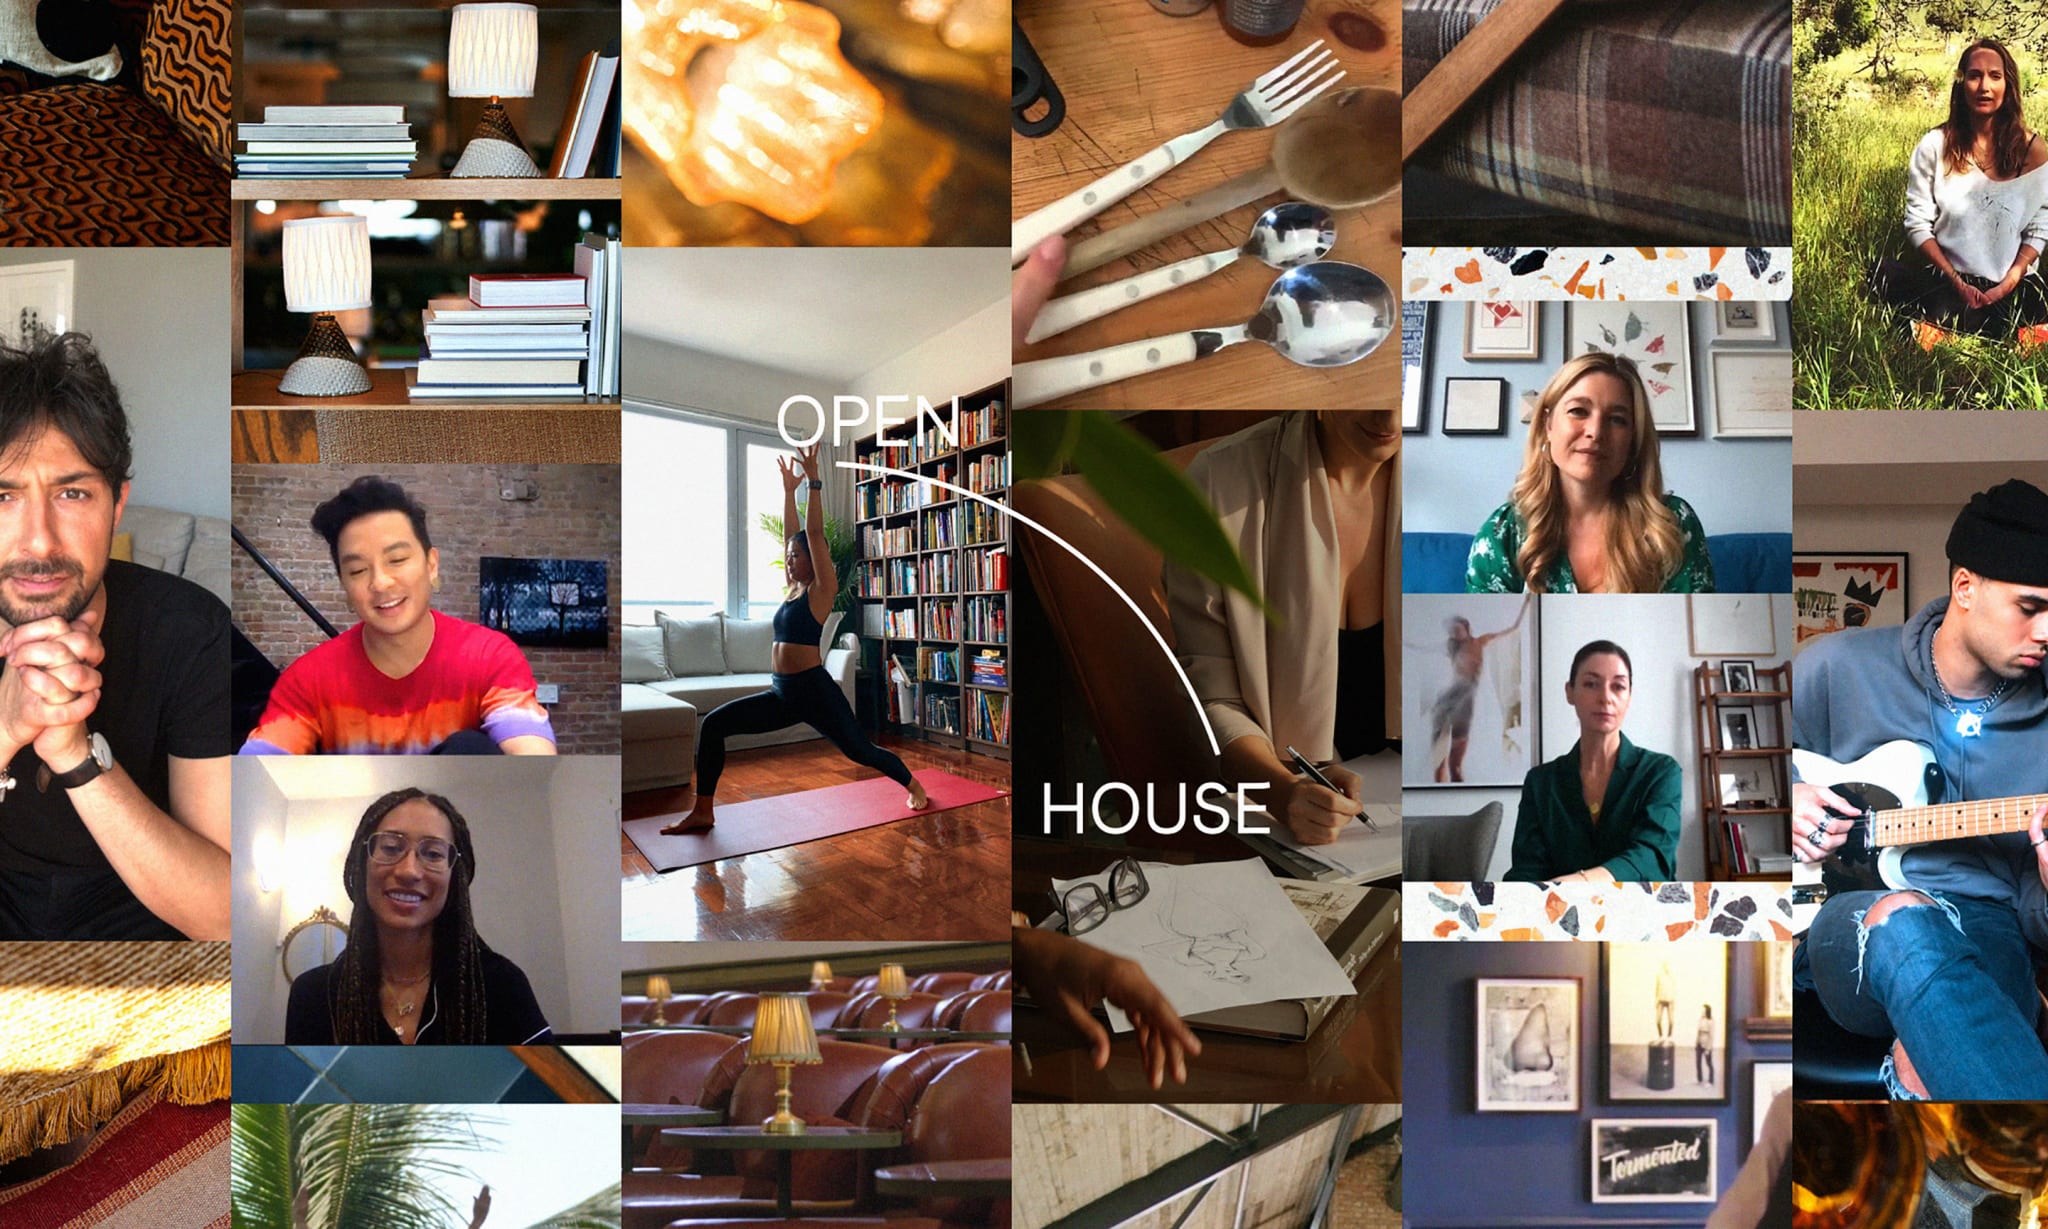 A collage of people and various wellbeing activities with Open House written over it in white type.